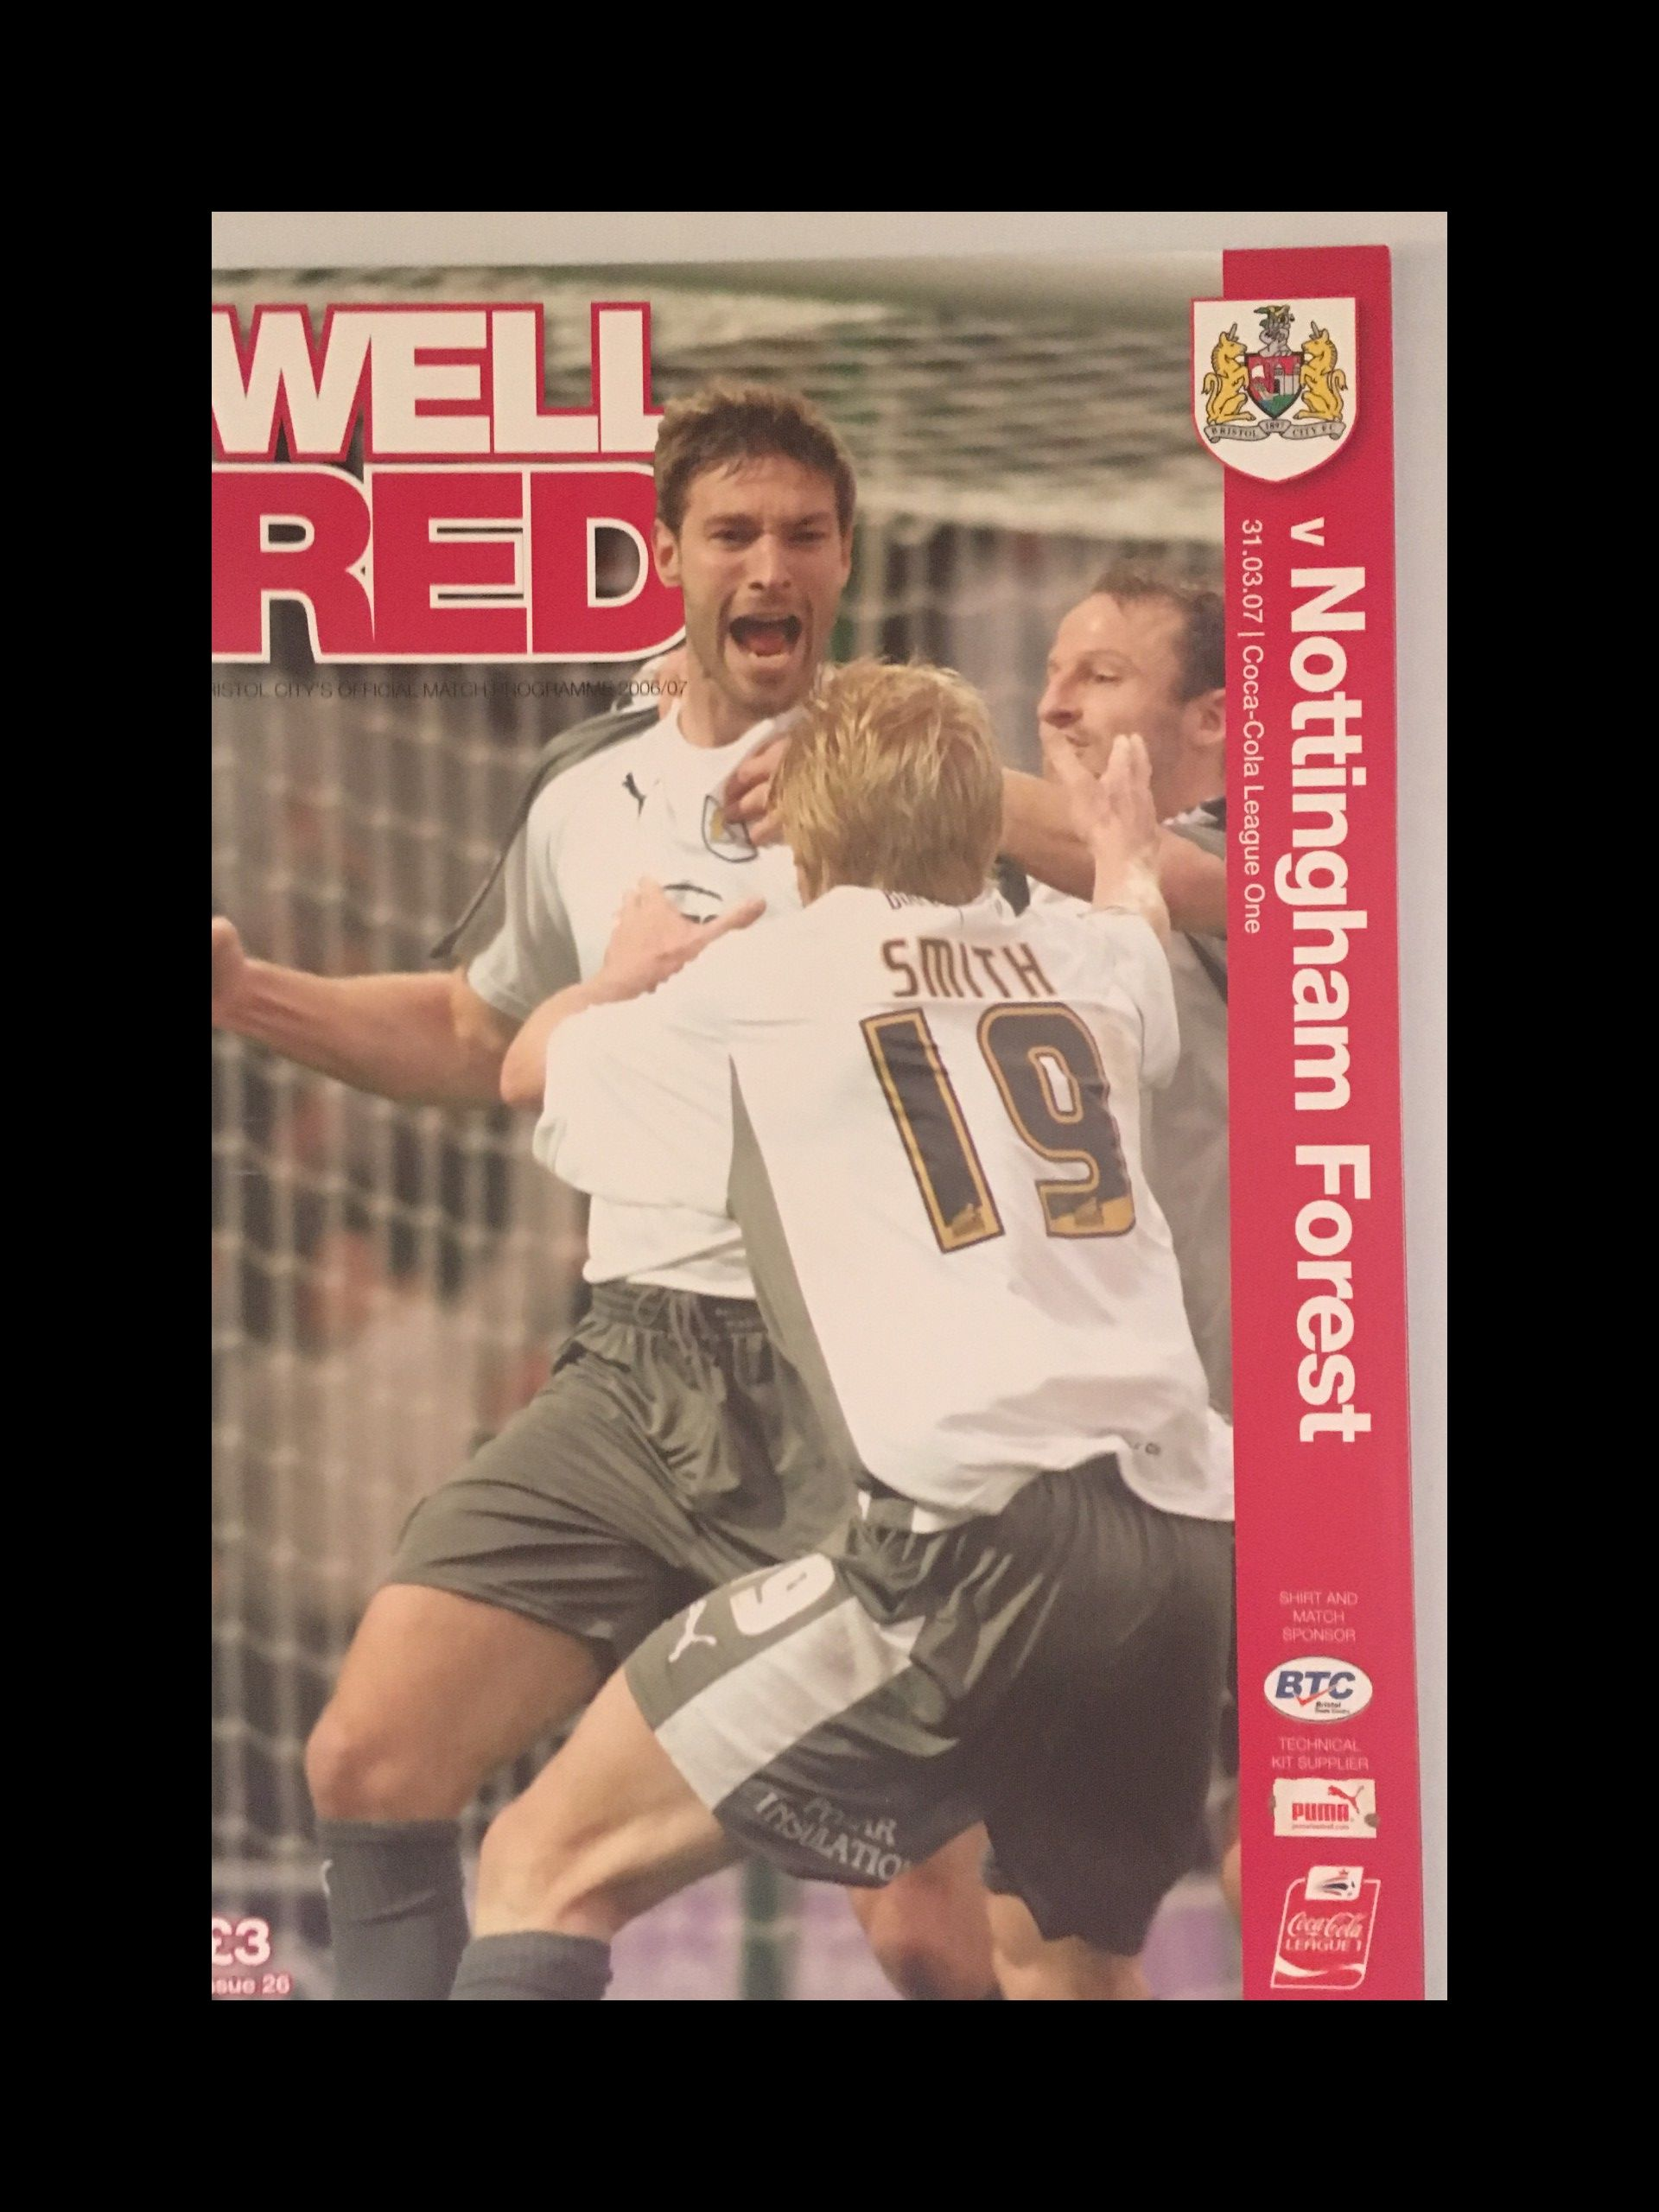 Bristol City v Nottingham Forest 31-03-2007 Programme